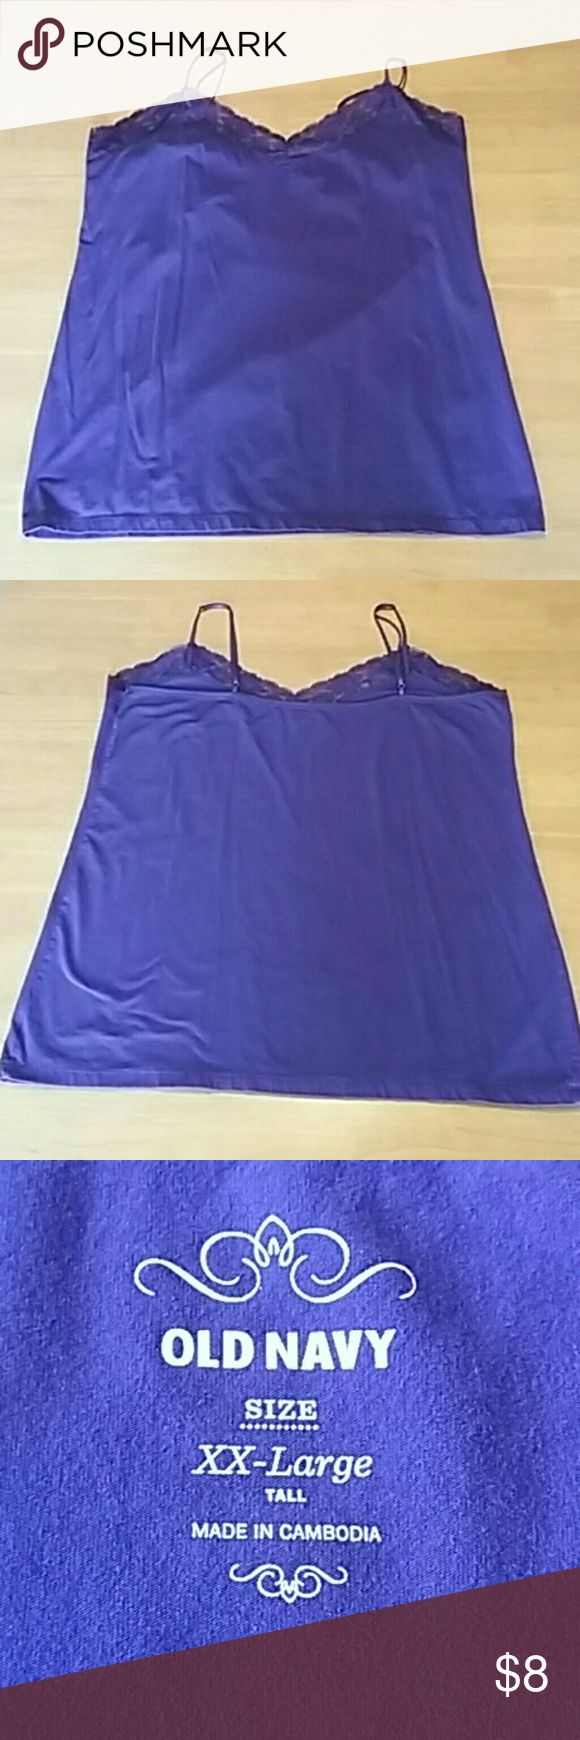 "Old Navy Purple Cami Purple camo with adjustable spaghetti straps, lace trim. 42"" bust, 44"" waist, 22"" long from armpit to hem. Excellent condition, only worn a couple times. XXL Tall. Old Navy Tops Camisoles"